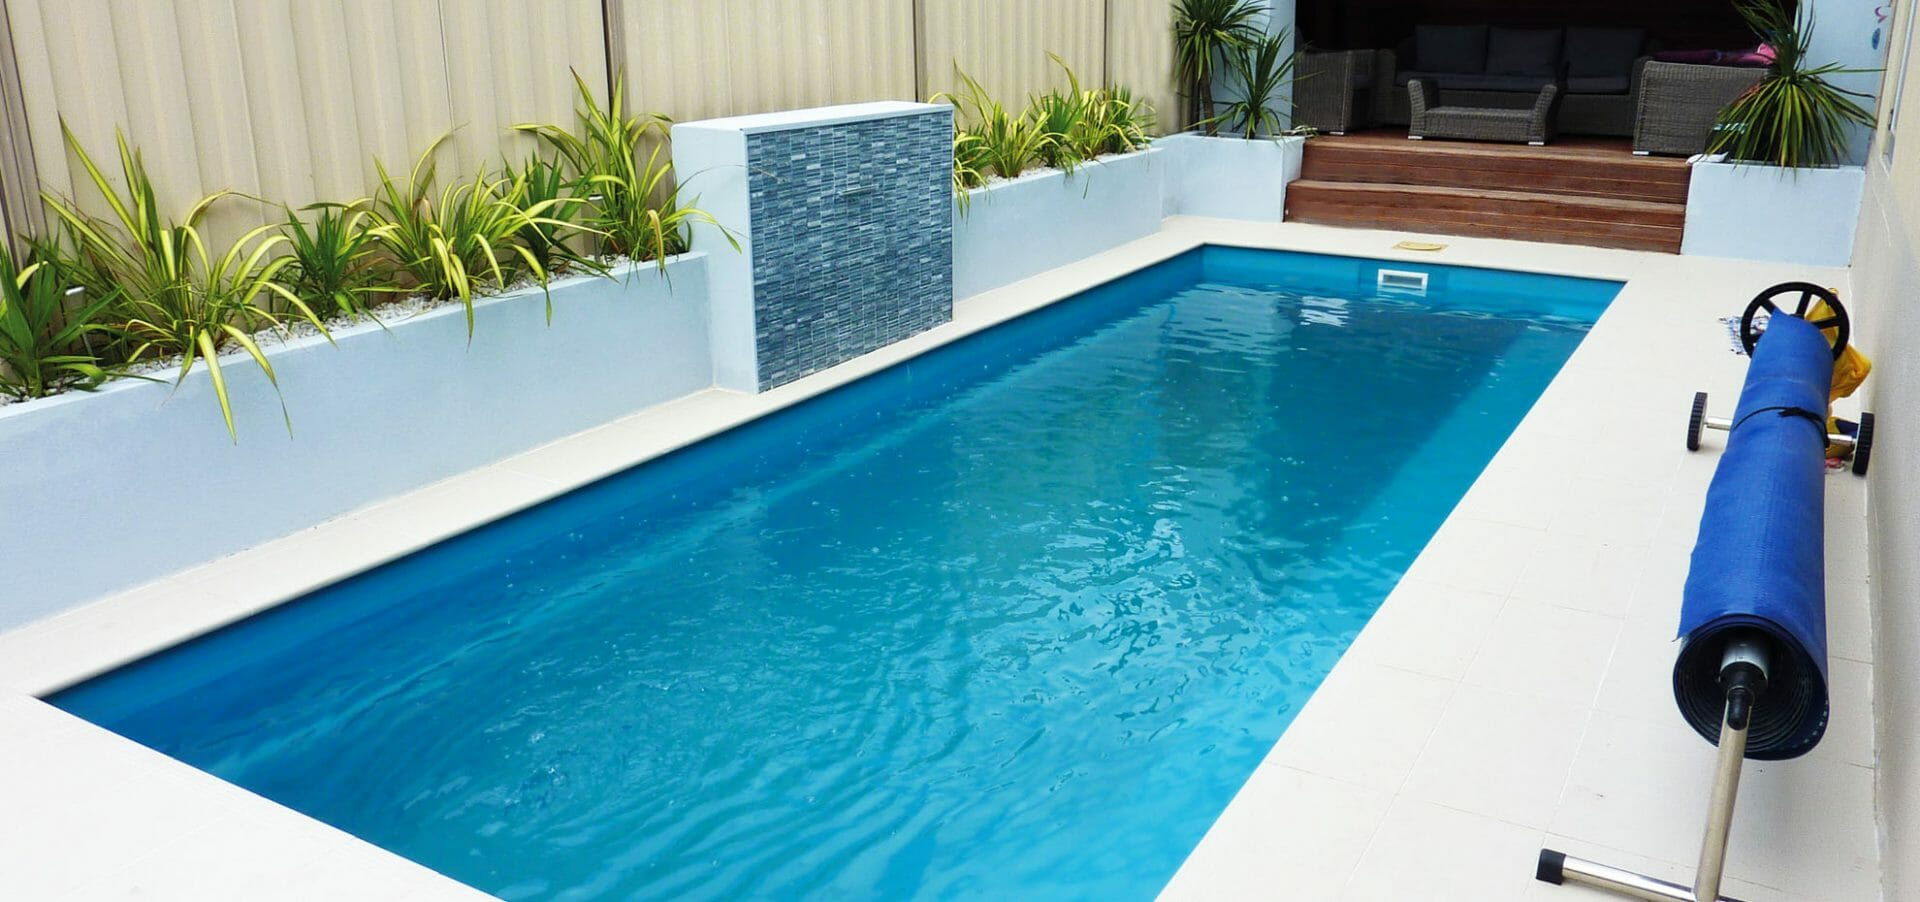 Rectangular Harmony fibreglass pool with water feature by Leisure Pools